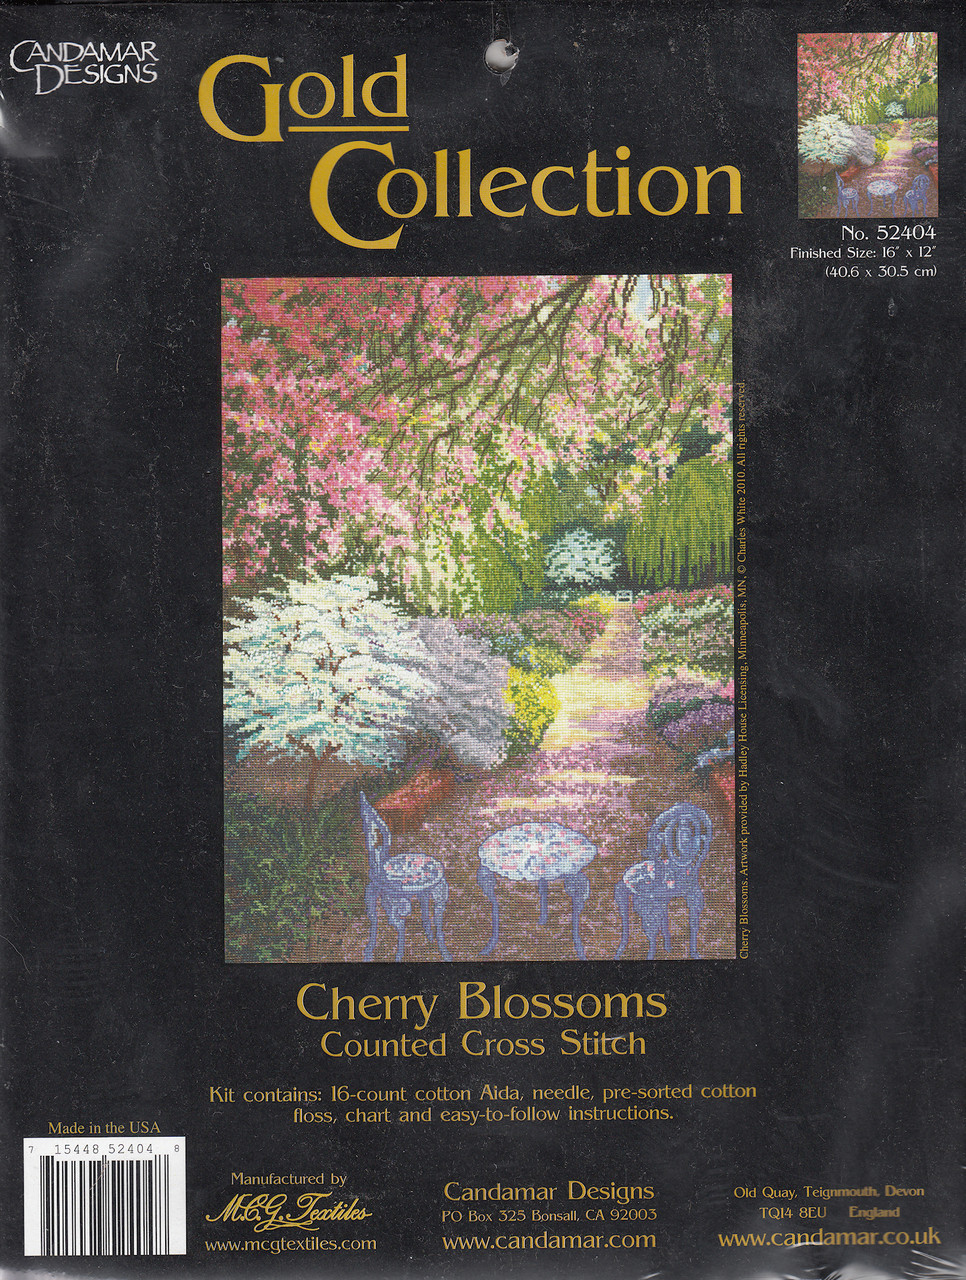 Gold Collection - Cherry Blossoms